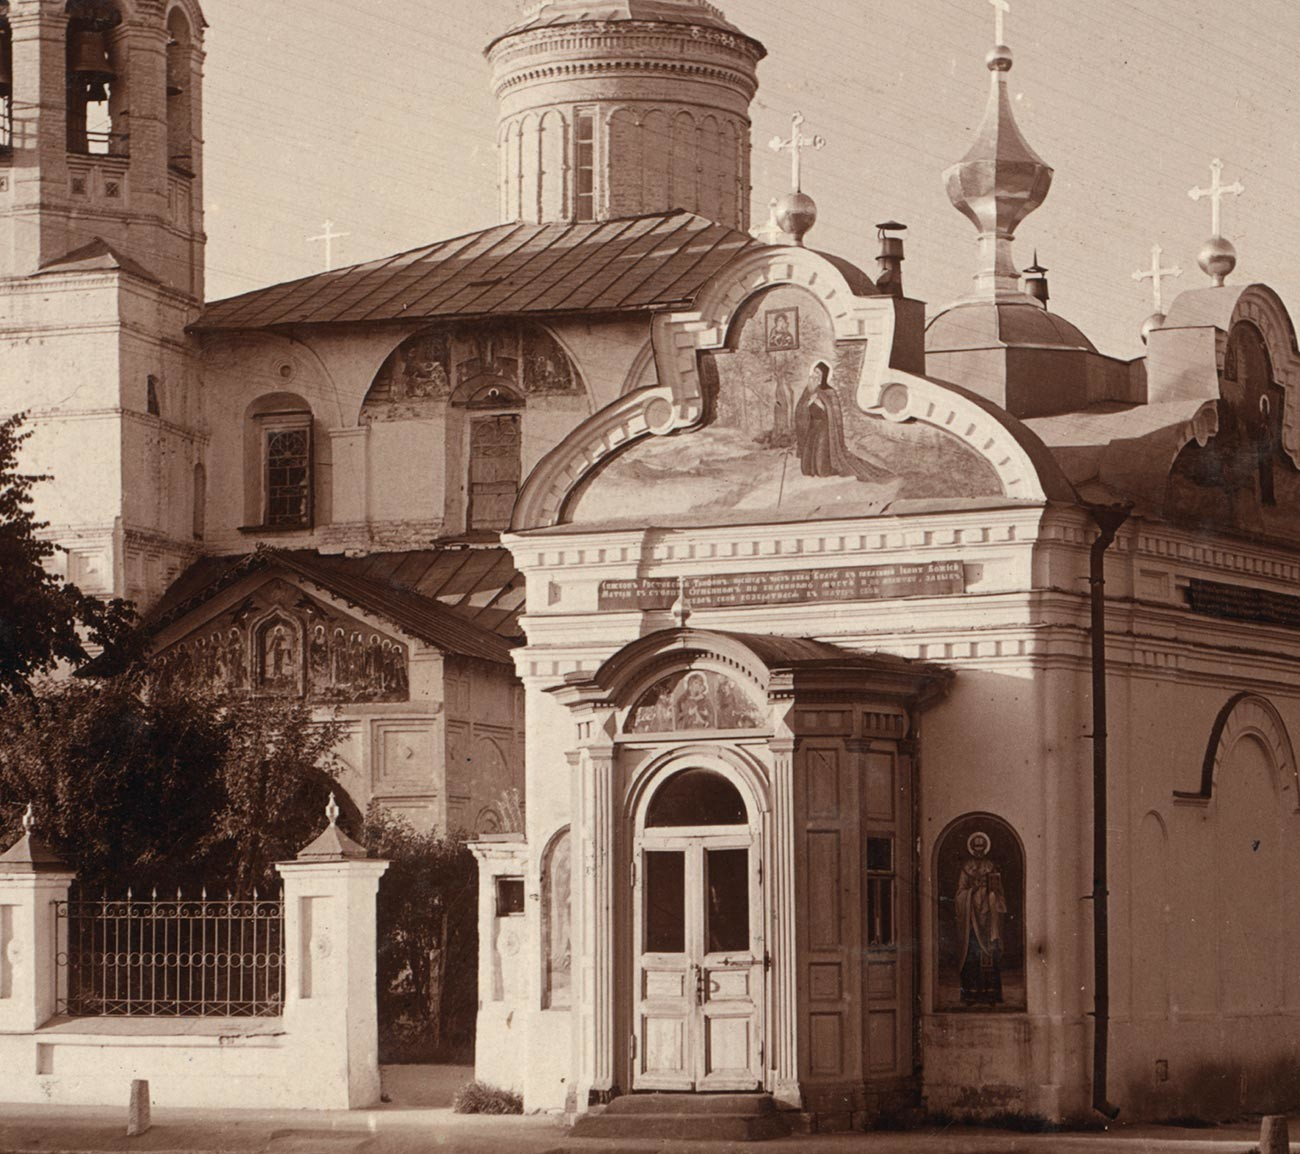 Chapel of the Tolg Icon of the Virgin (demolished early 1930s). Background: Church of St. Nicholas Nadein. Summer, 1910